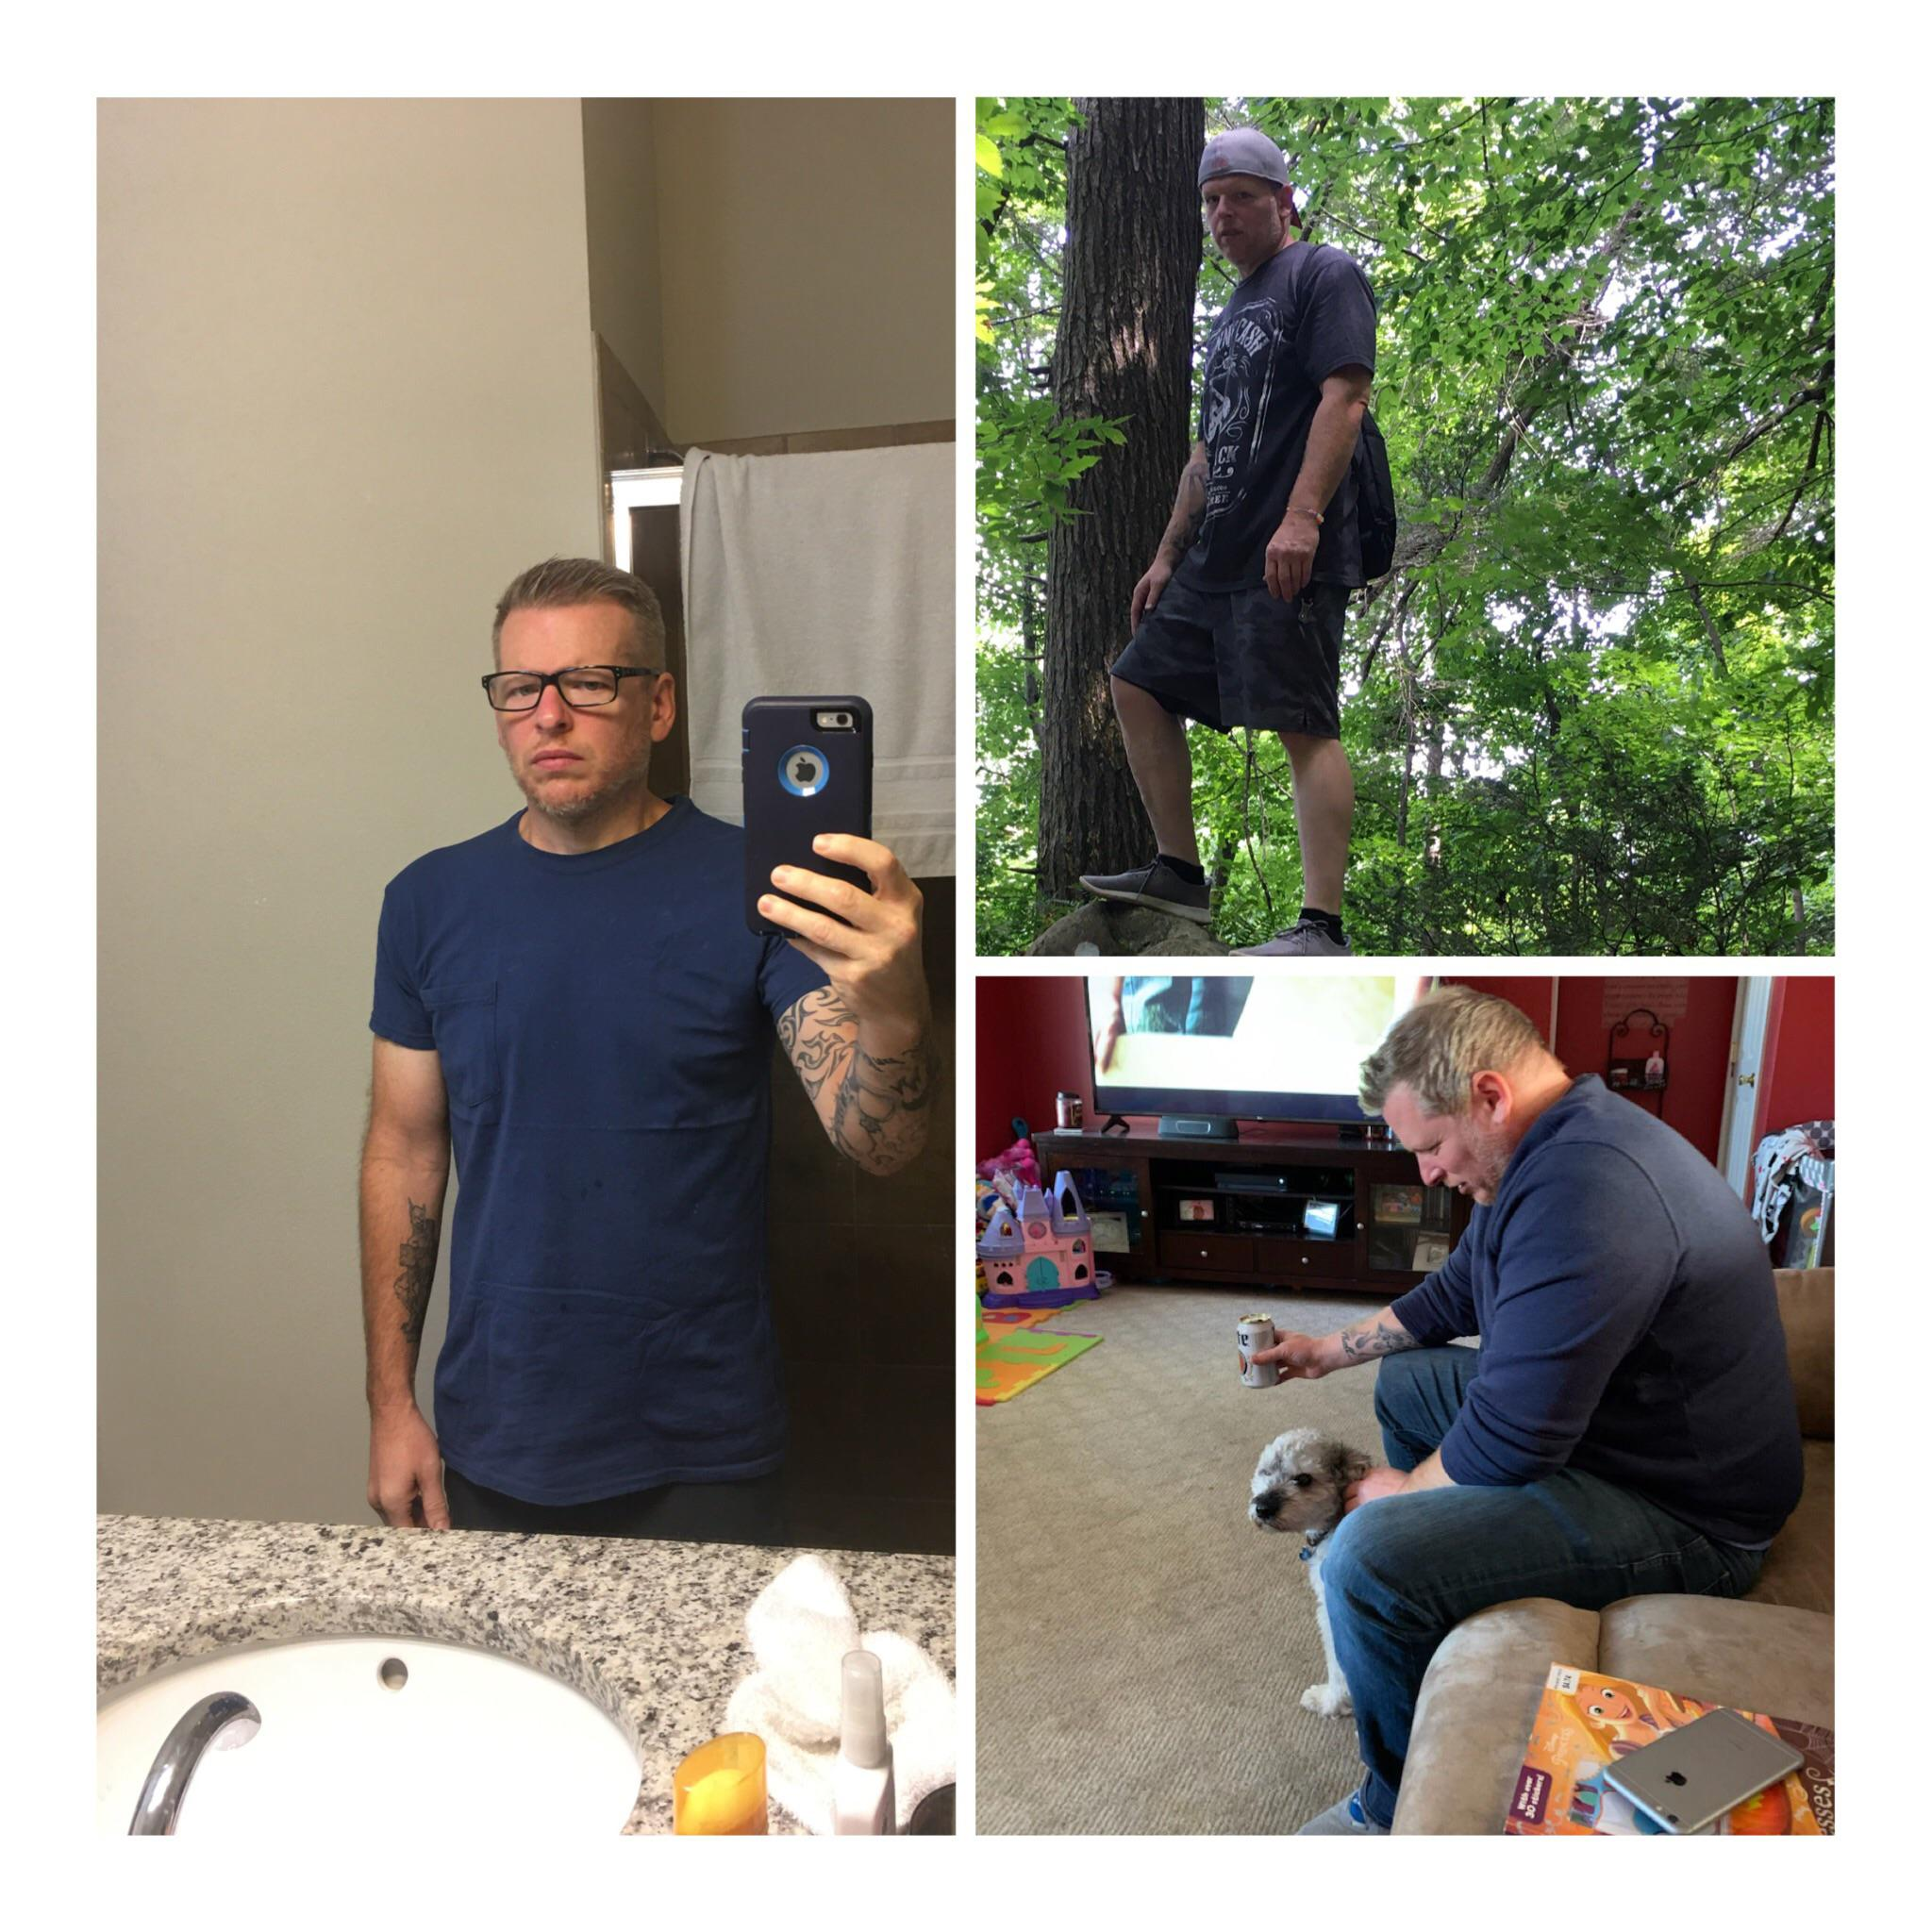 5 foot 8 Male Before and After 97 lbs Fat Loss 250 lbs to 153 lbs